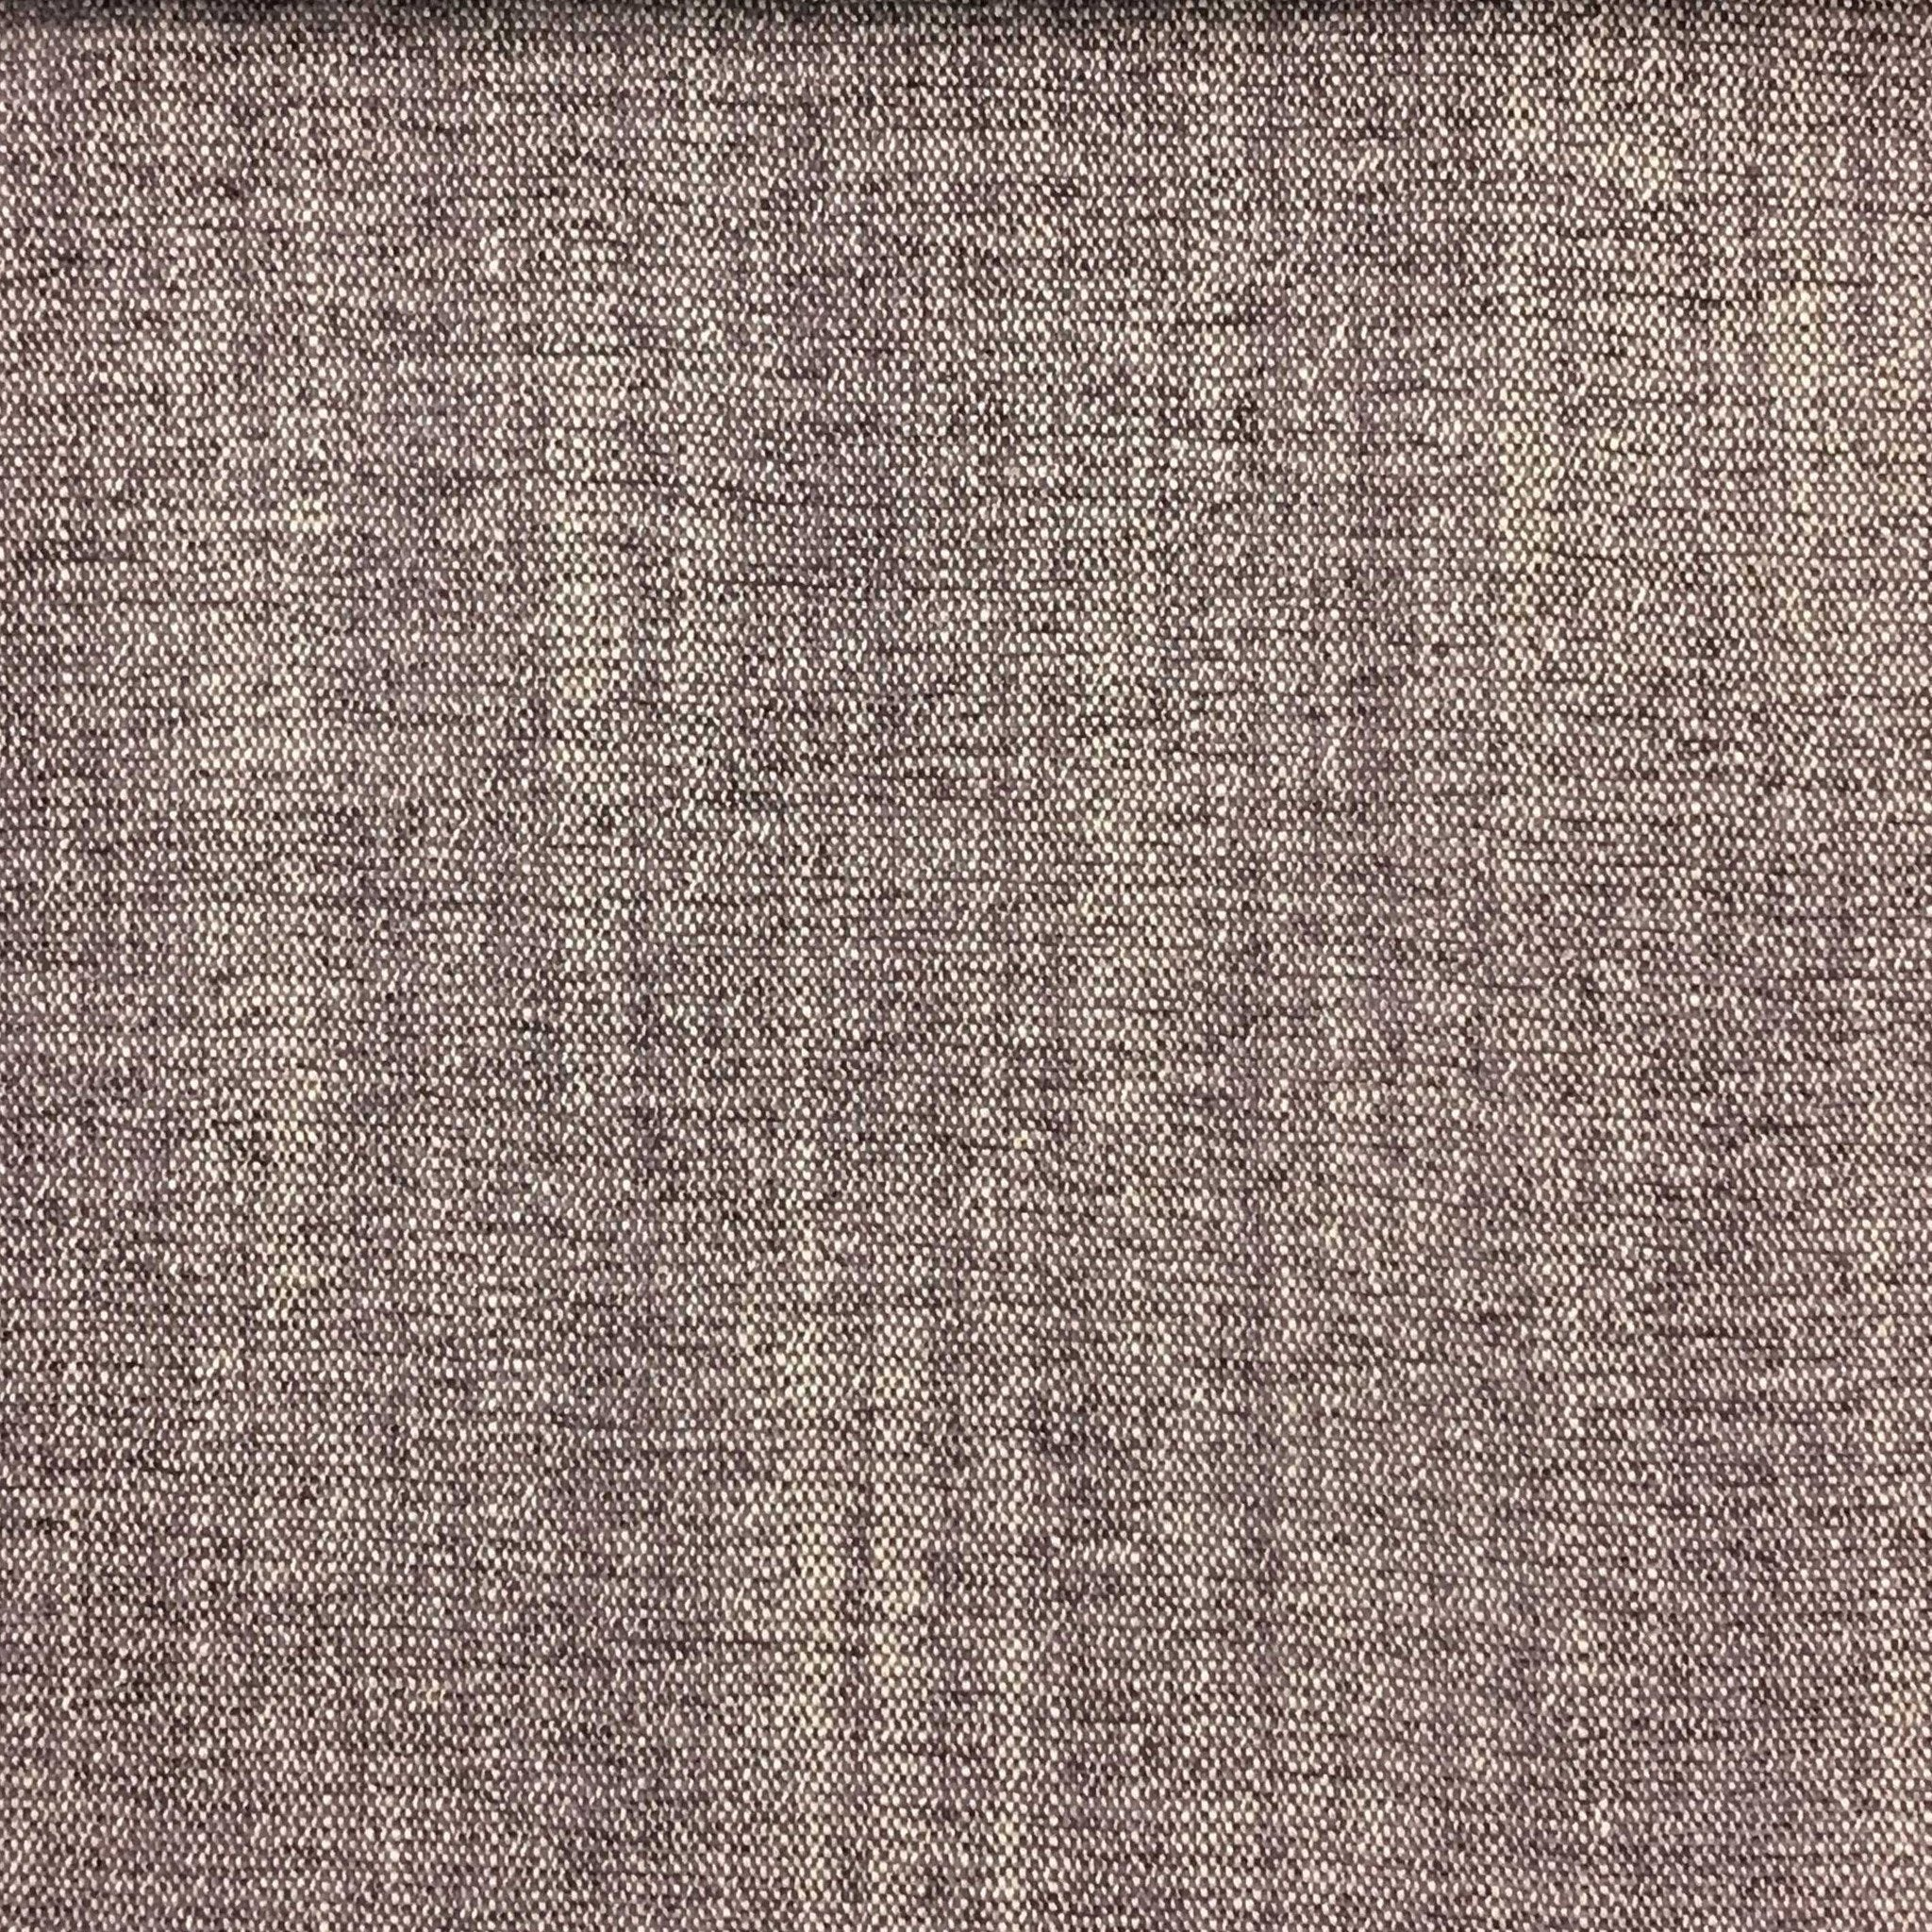 Bronson Linen Blend Textured Chenille Upholstery Fabric By The Yard Top Fabric